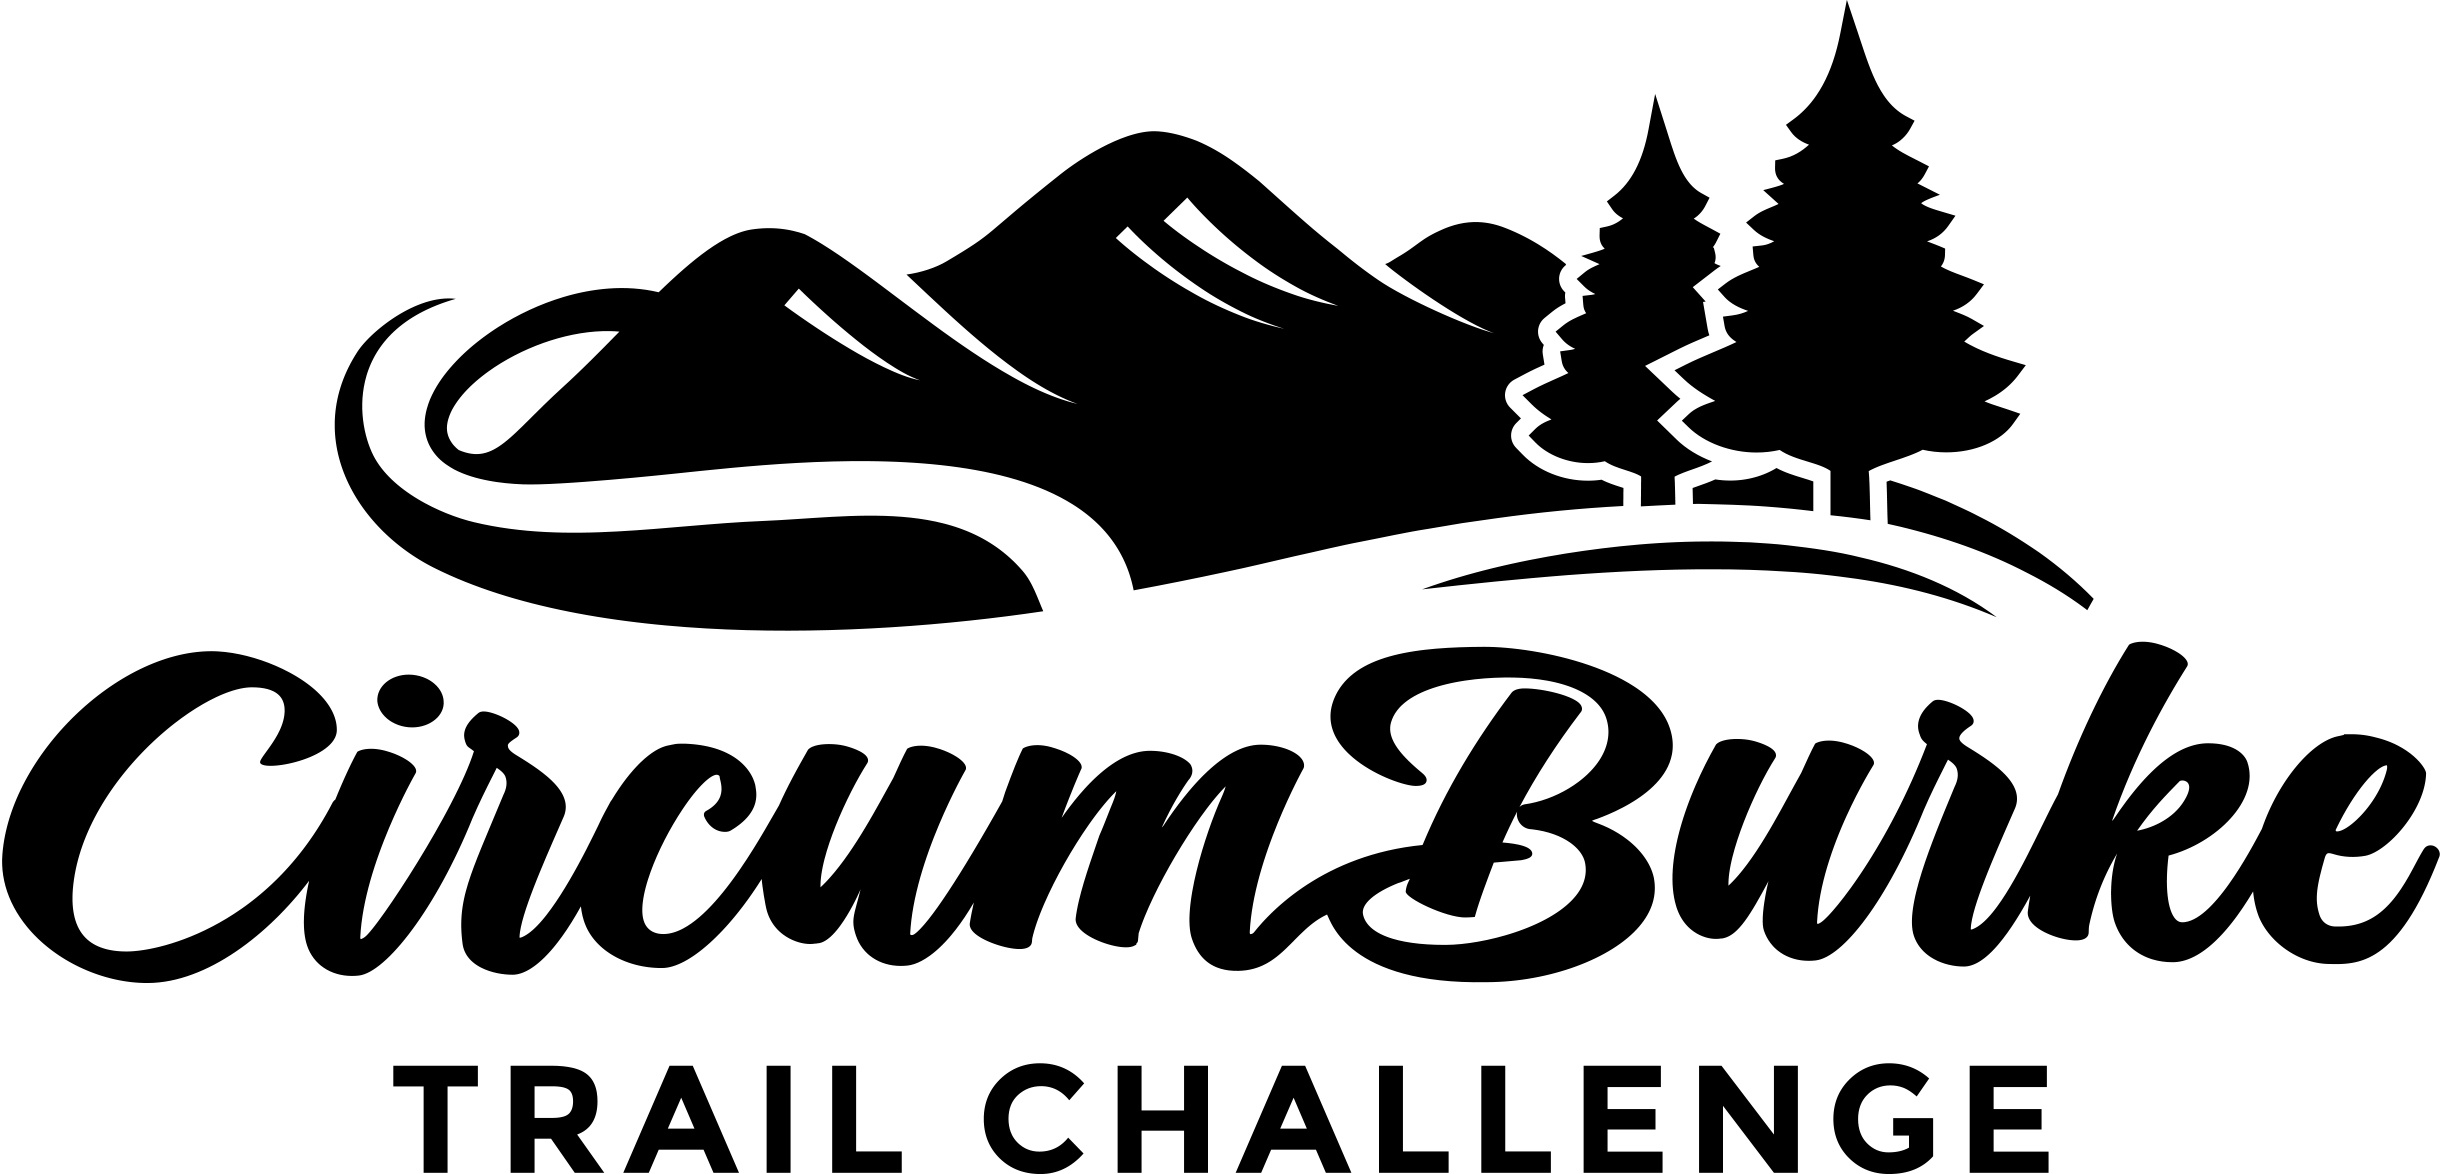 THE CIRCUMBURKE TRAIL CHALLENGE